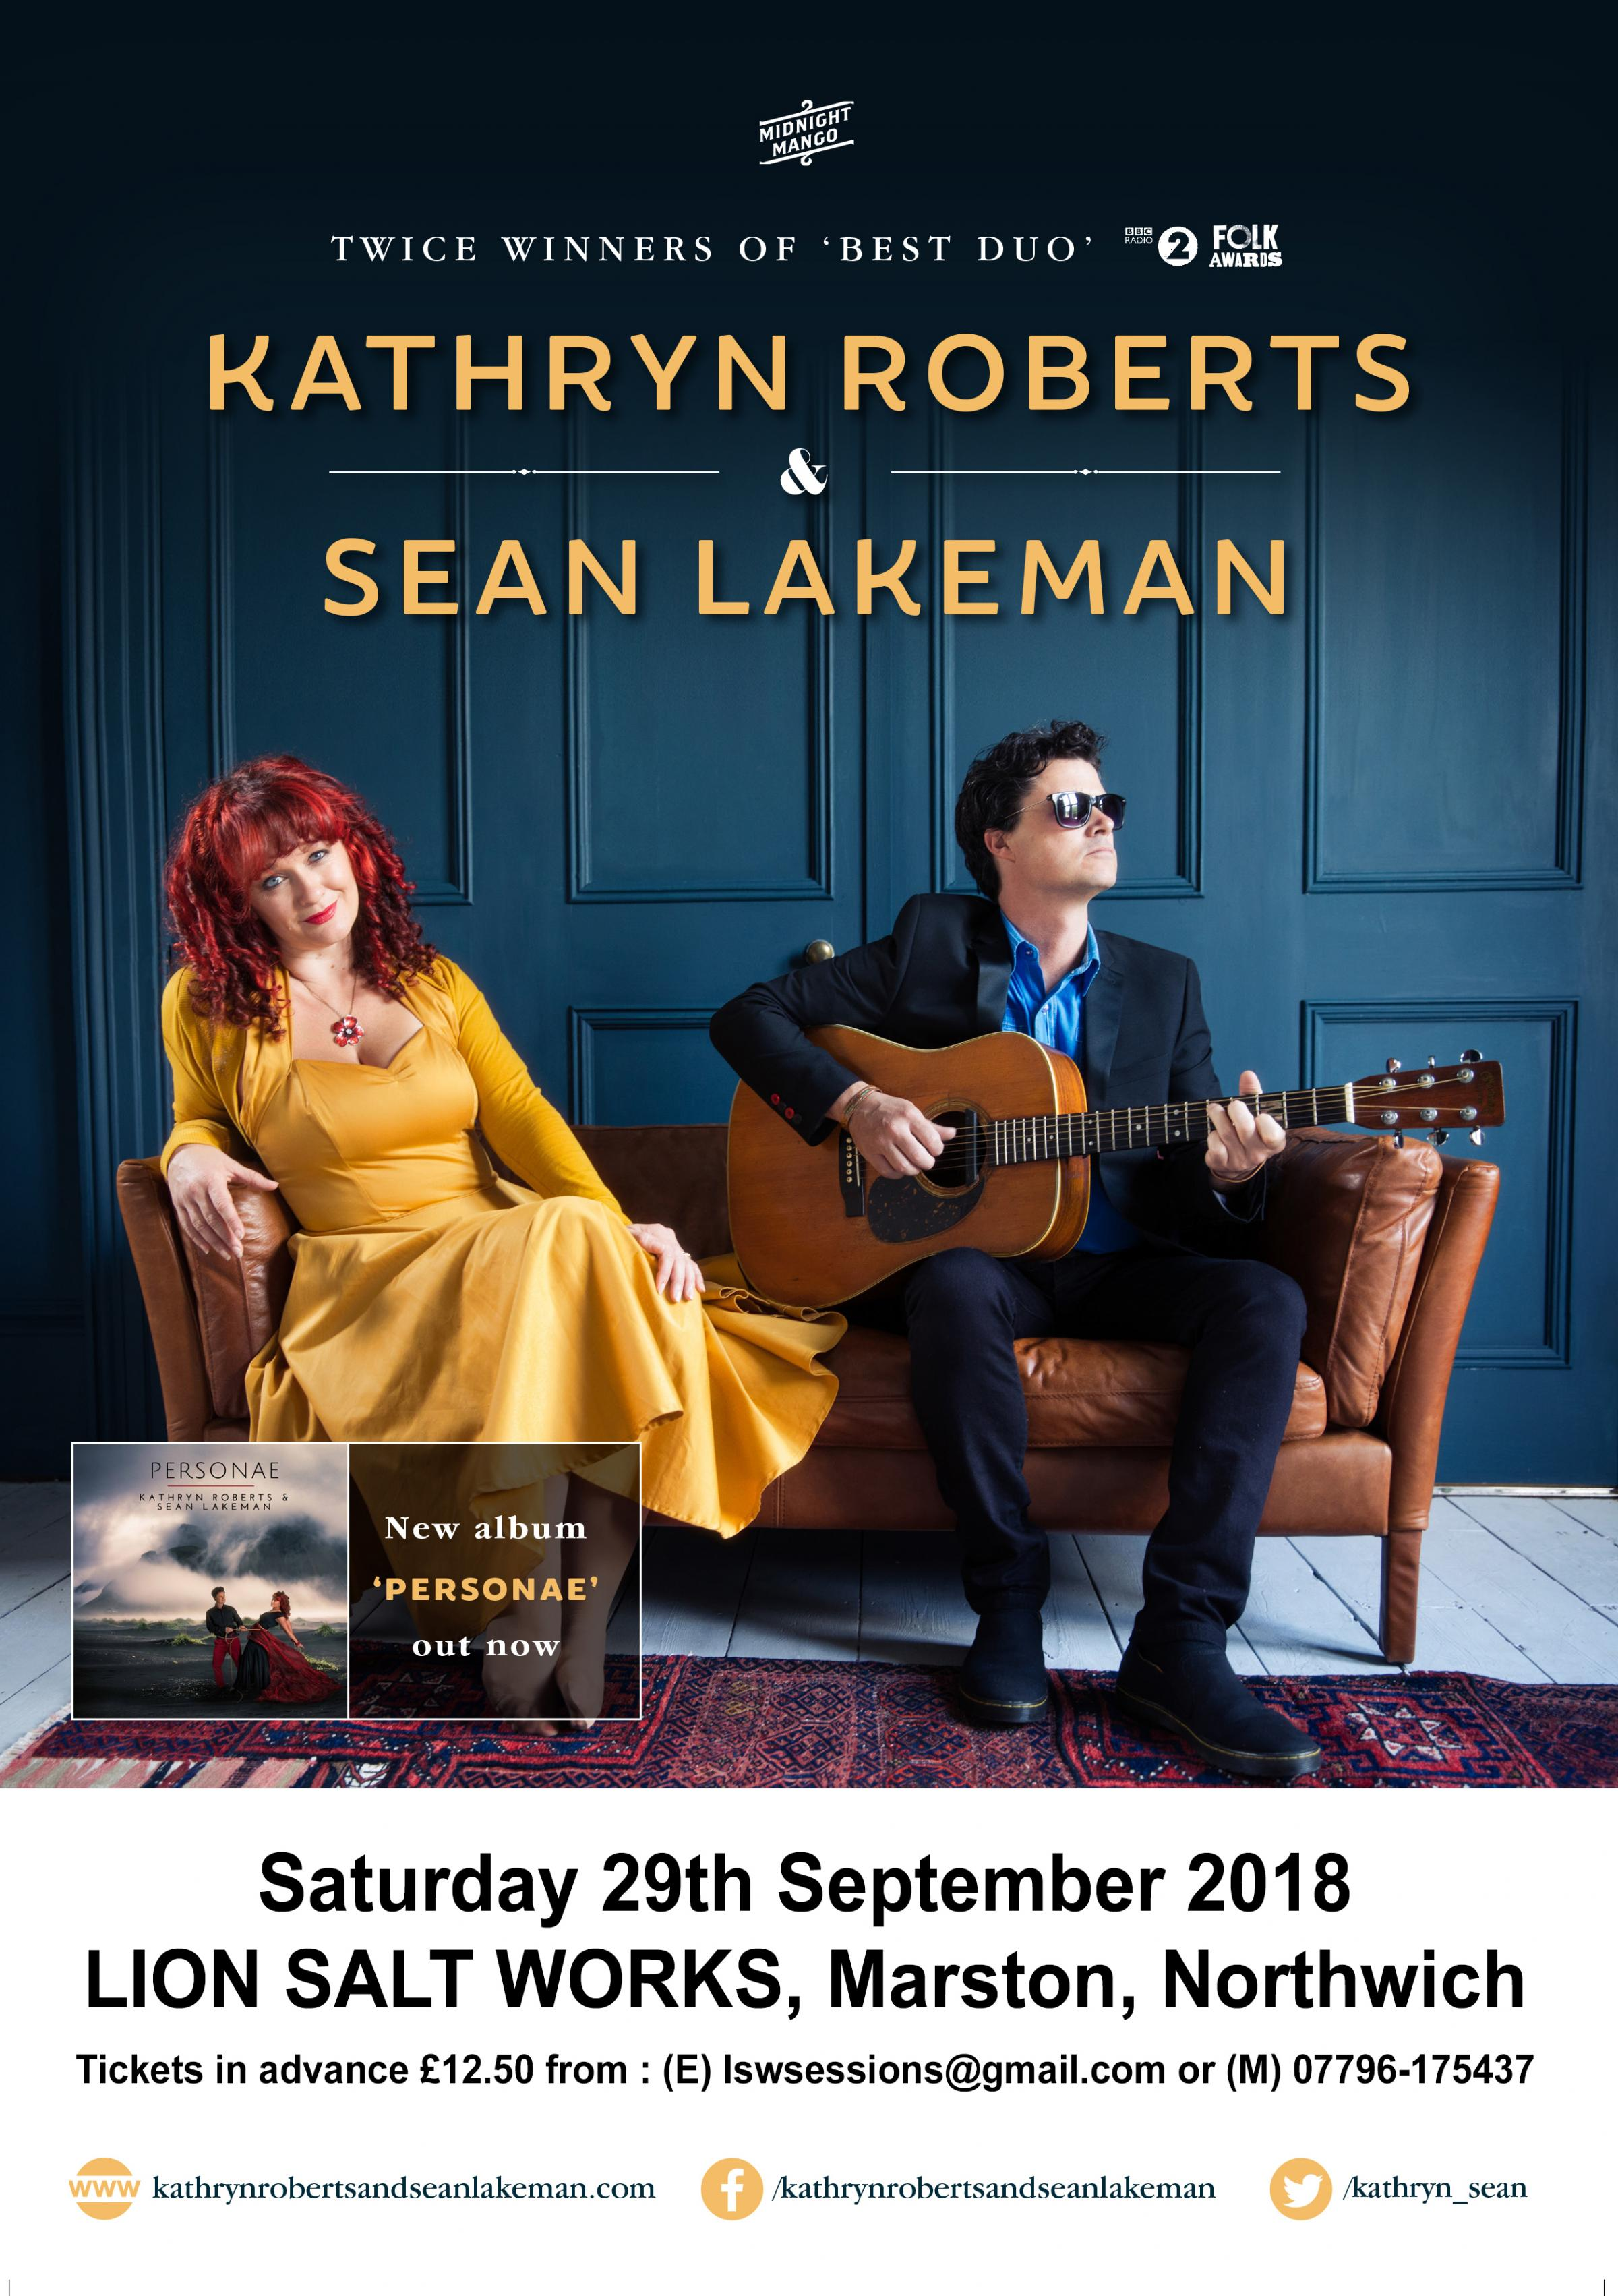 Kathryn Roberts and Sean Lakeman